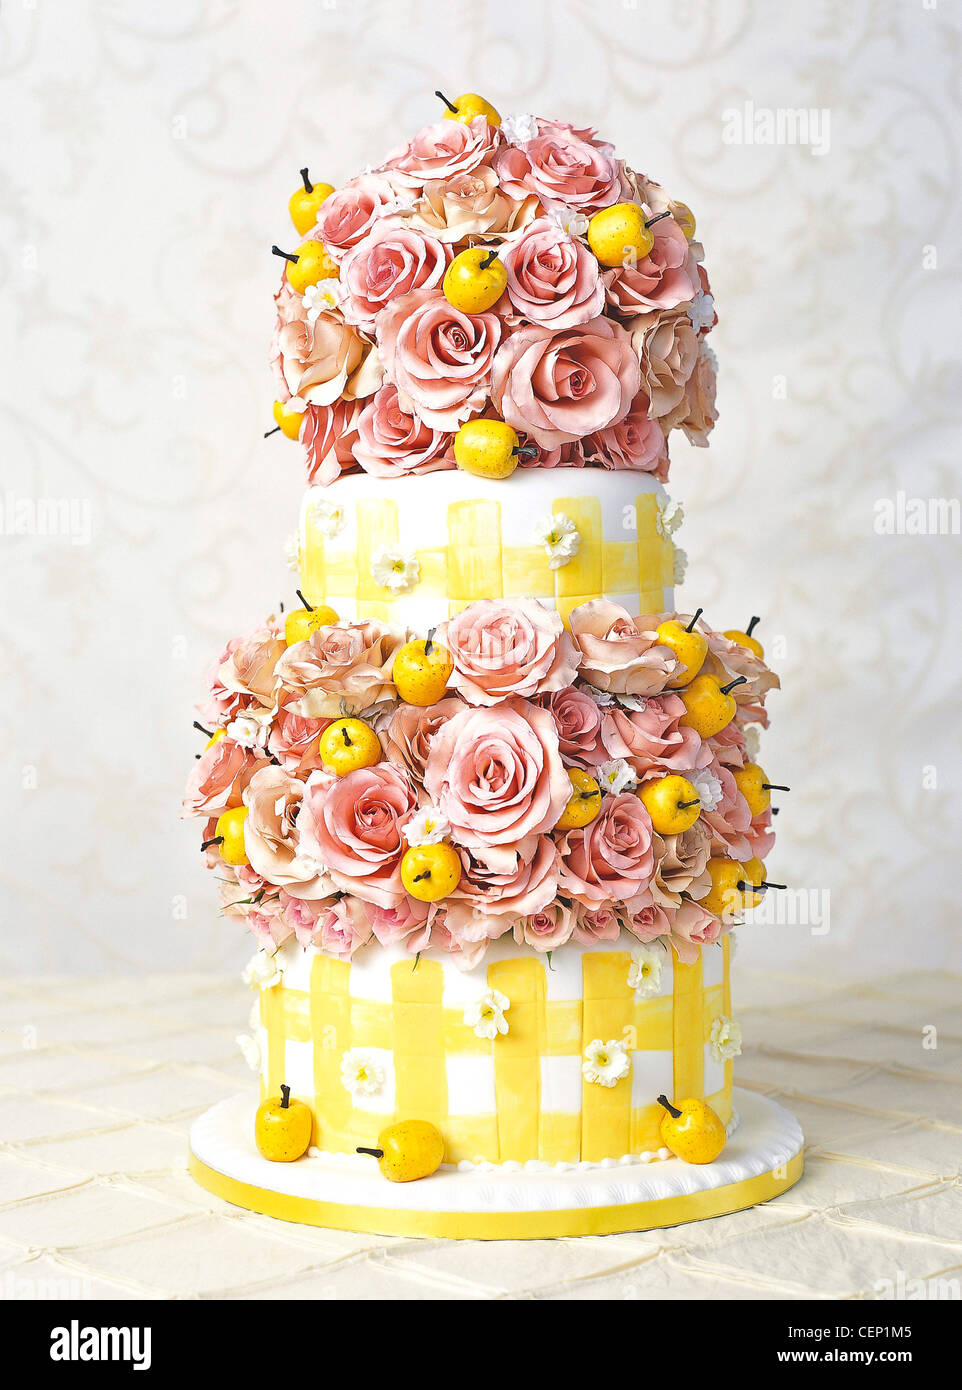 Beautiful Wedding Party Food A yellow and white fondant iced cake ...